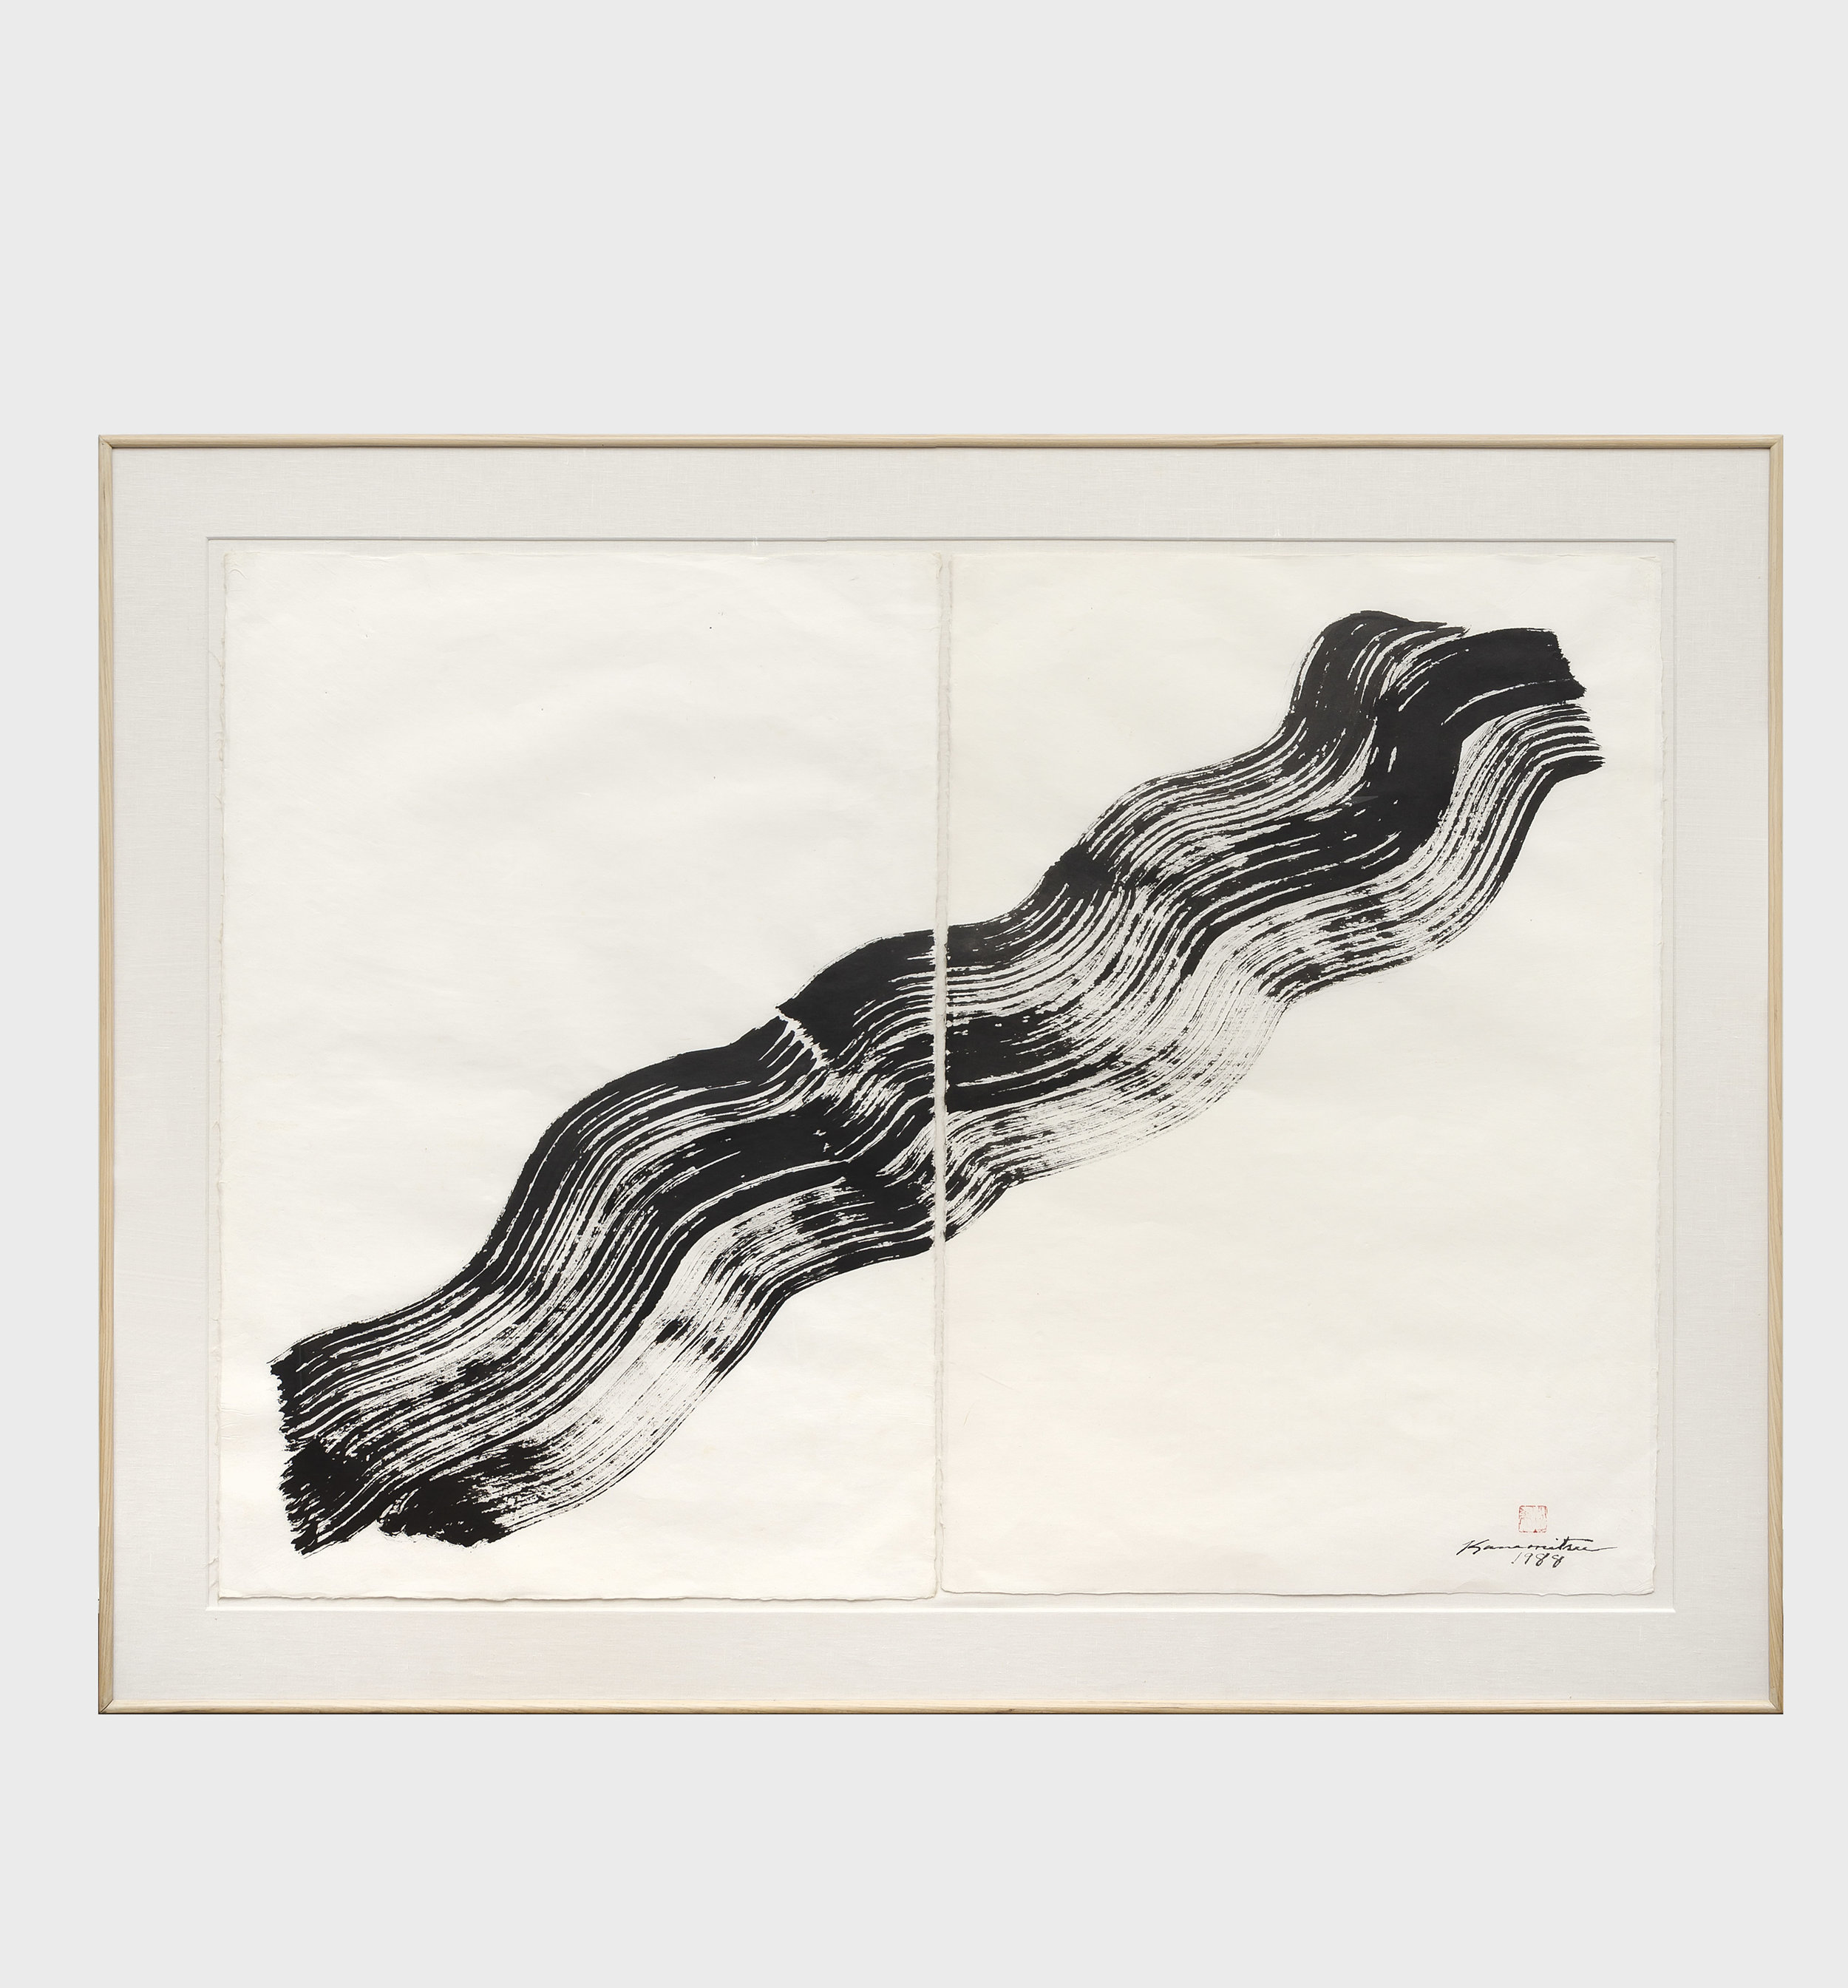 Nagare #4 , 1988 sumi on handmade Japanese paper 46 7/8 x 58 7/8 inches; 119.1 x 149.5 centimeters